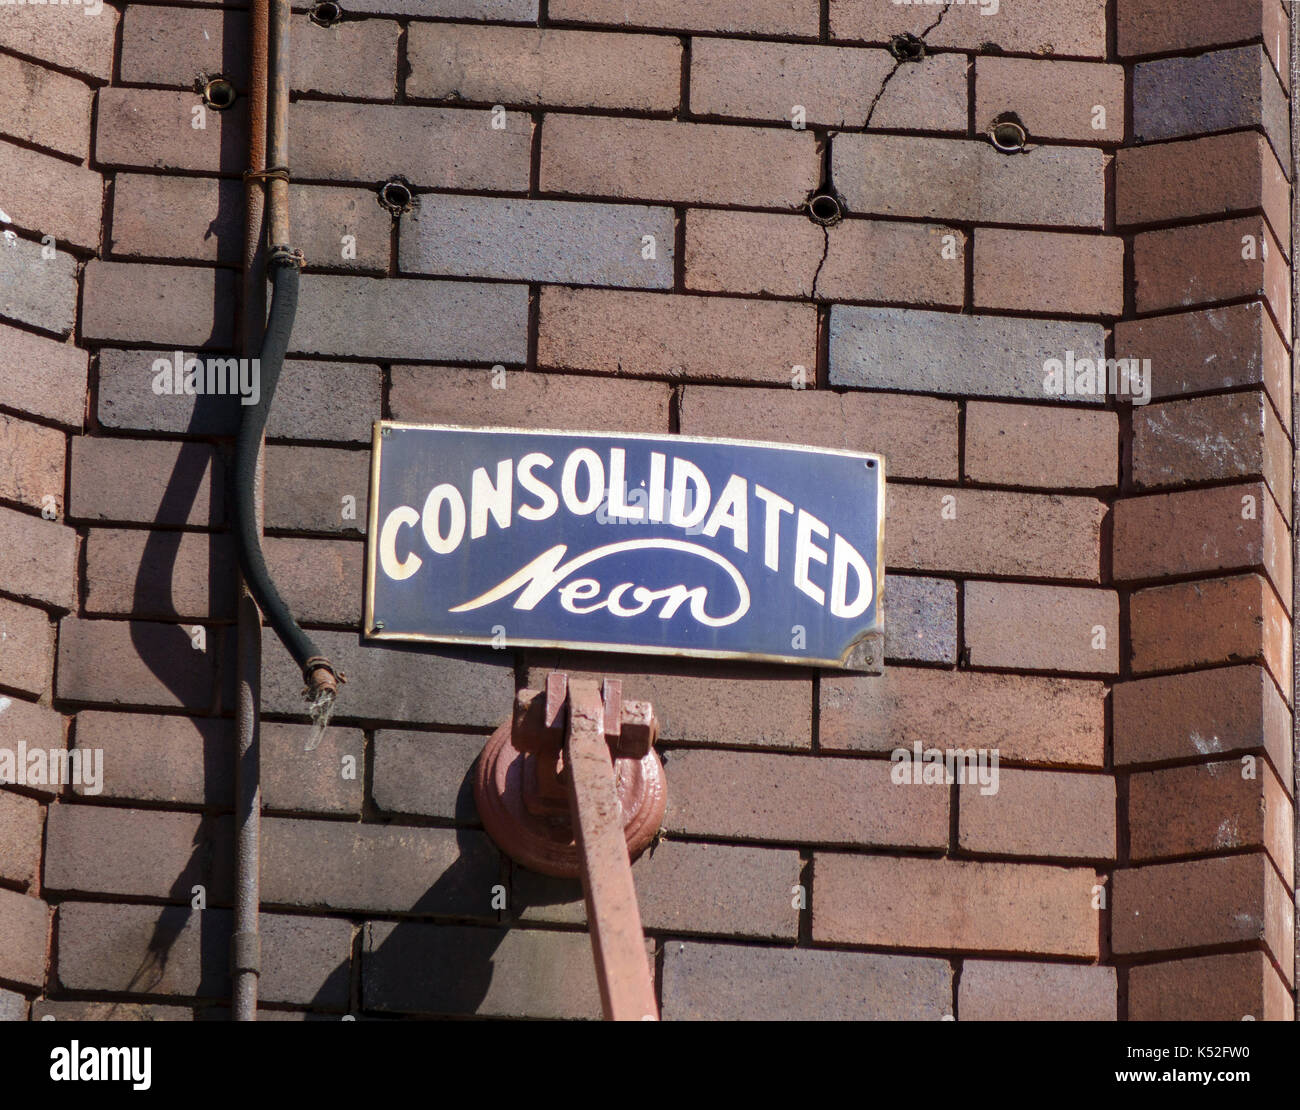 An Old Consolidated Neon Company Sign Sydney Australia Screwed To A Brick Building - Stock Image